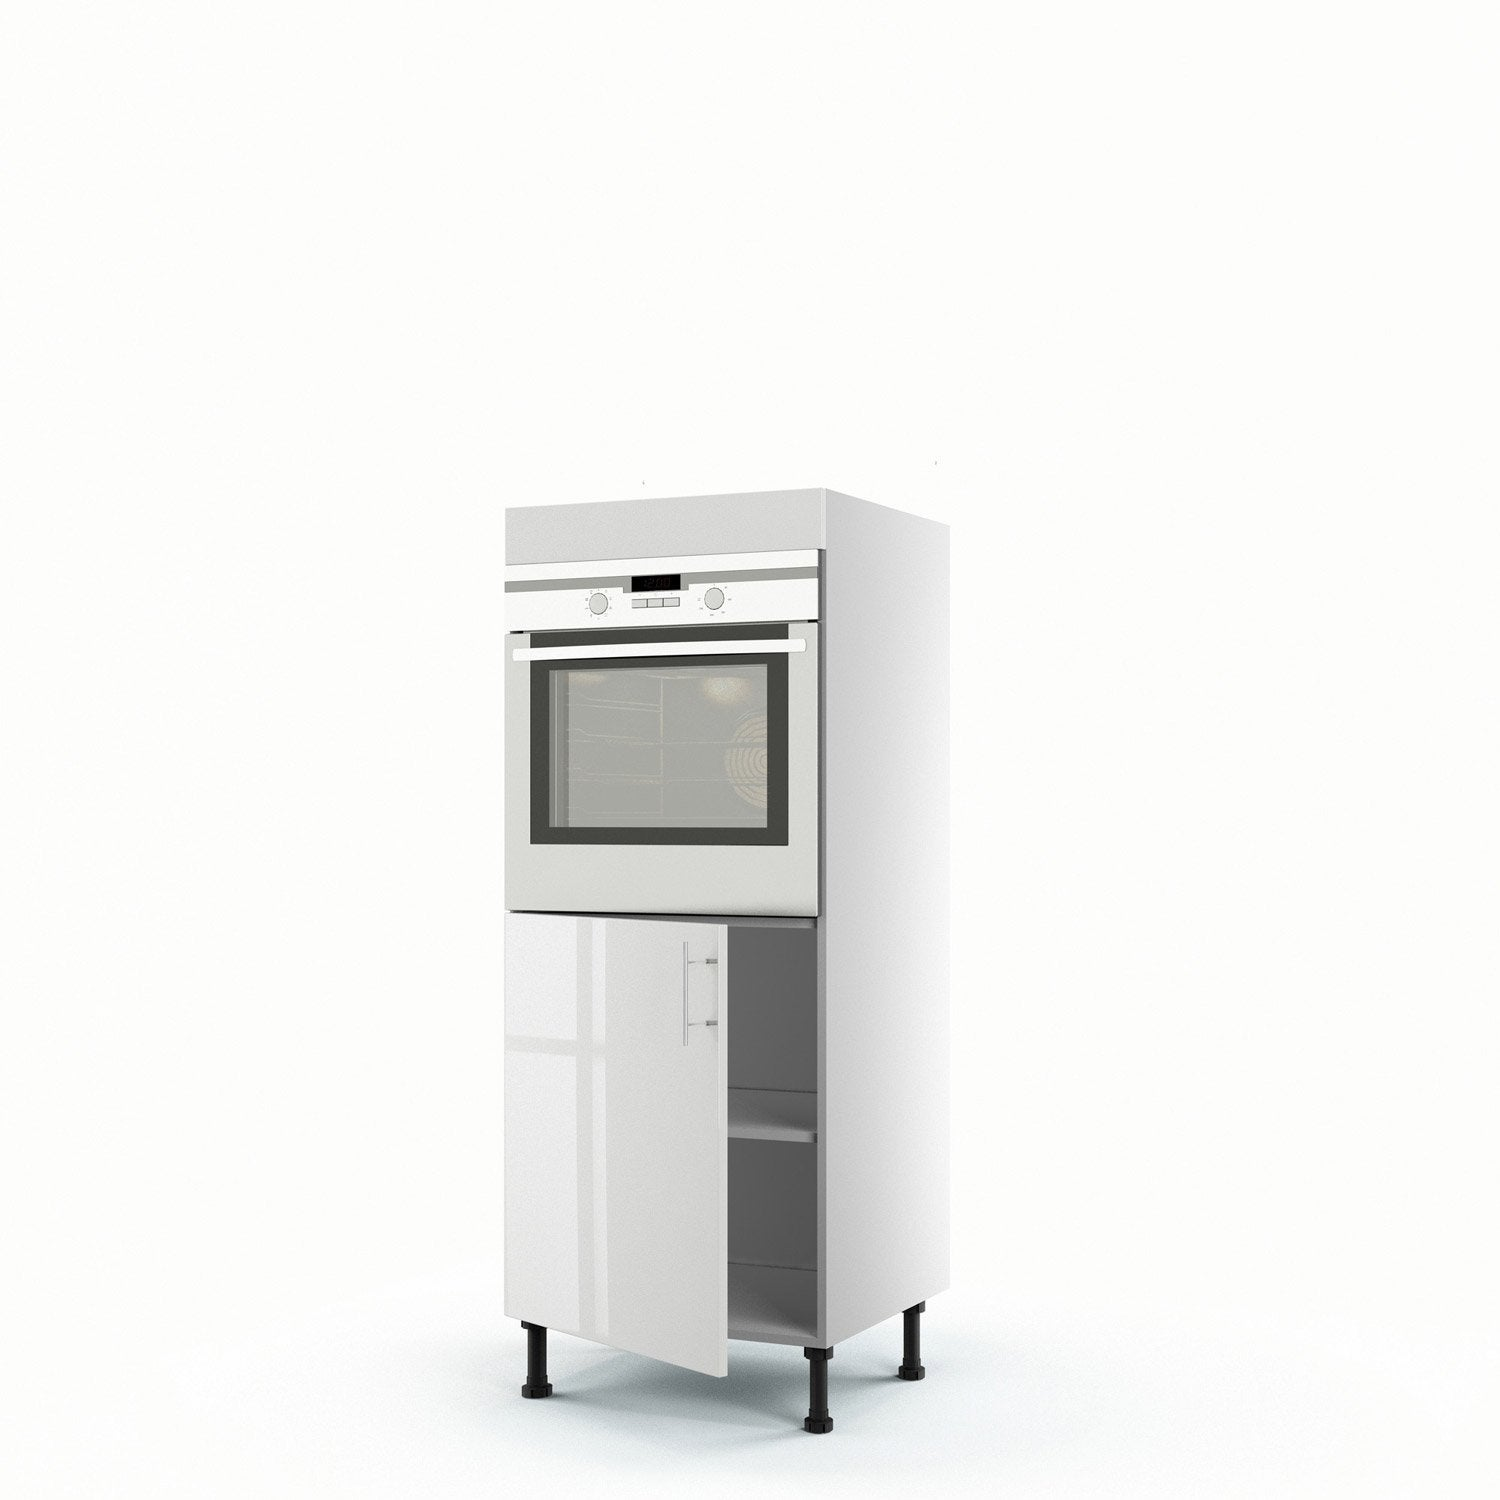 Meuble de cuisine demi colonne blanc four 1 porte rio h for Portes elements cuisine leroy merlin